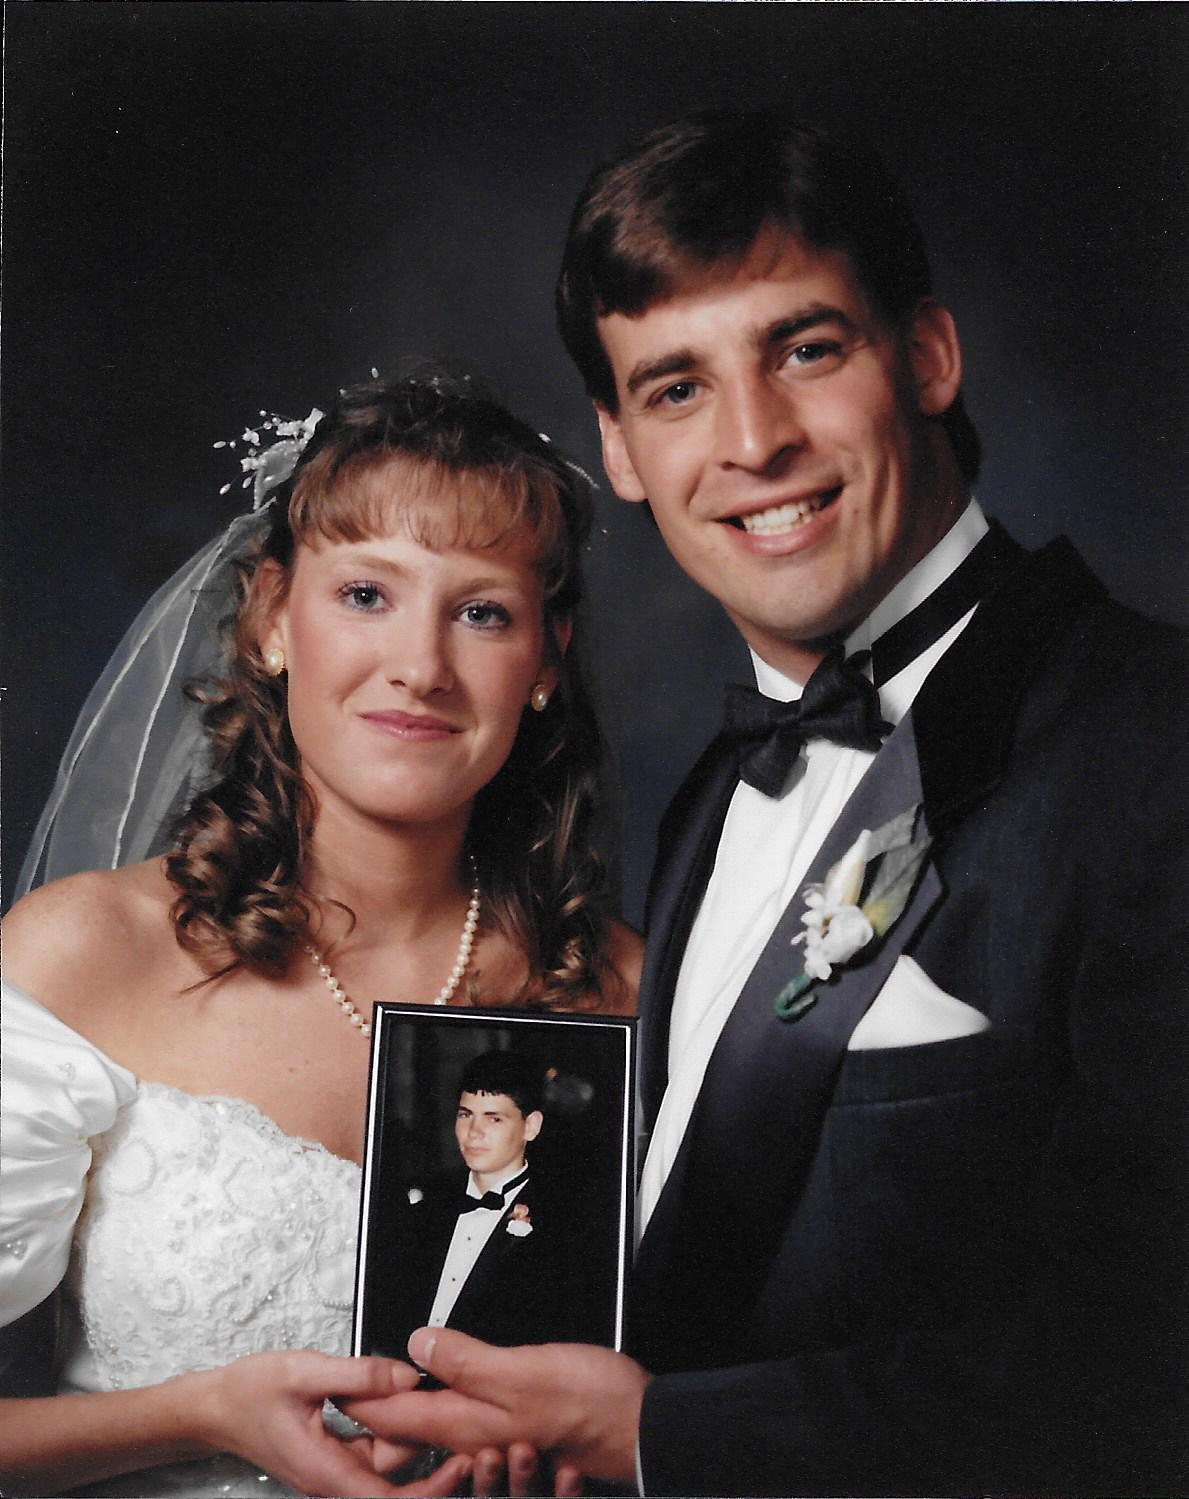 Kristin and Joe on their wedding day, 7 months after Adam passed away.